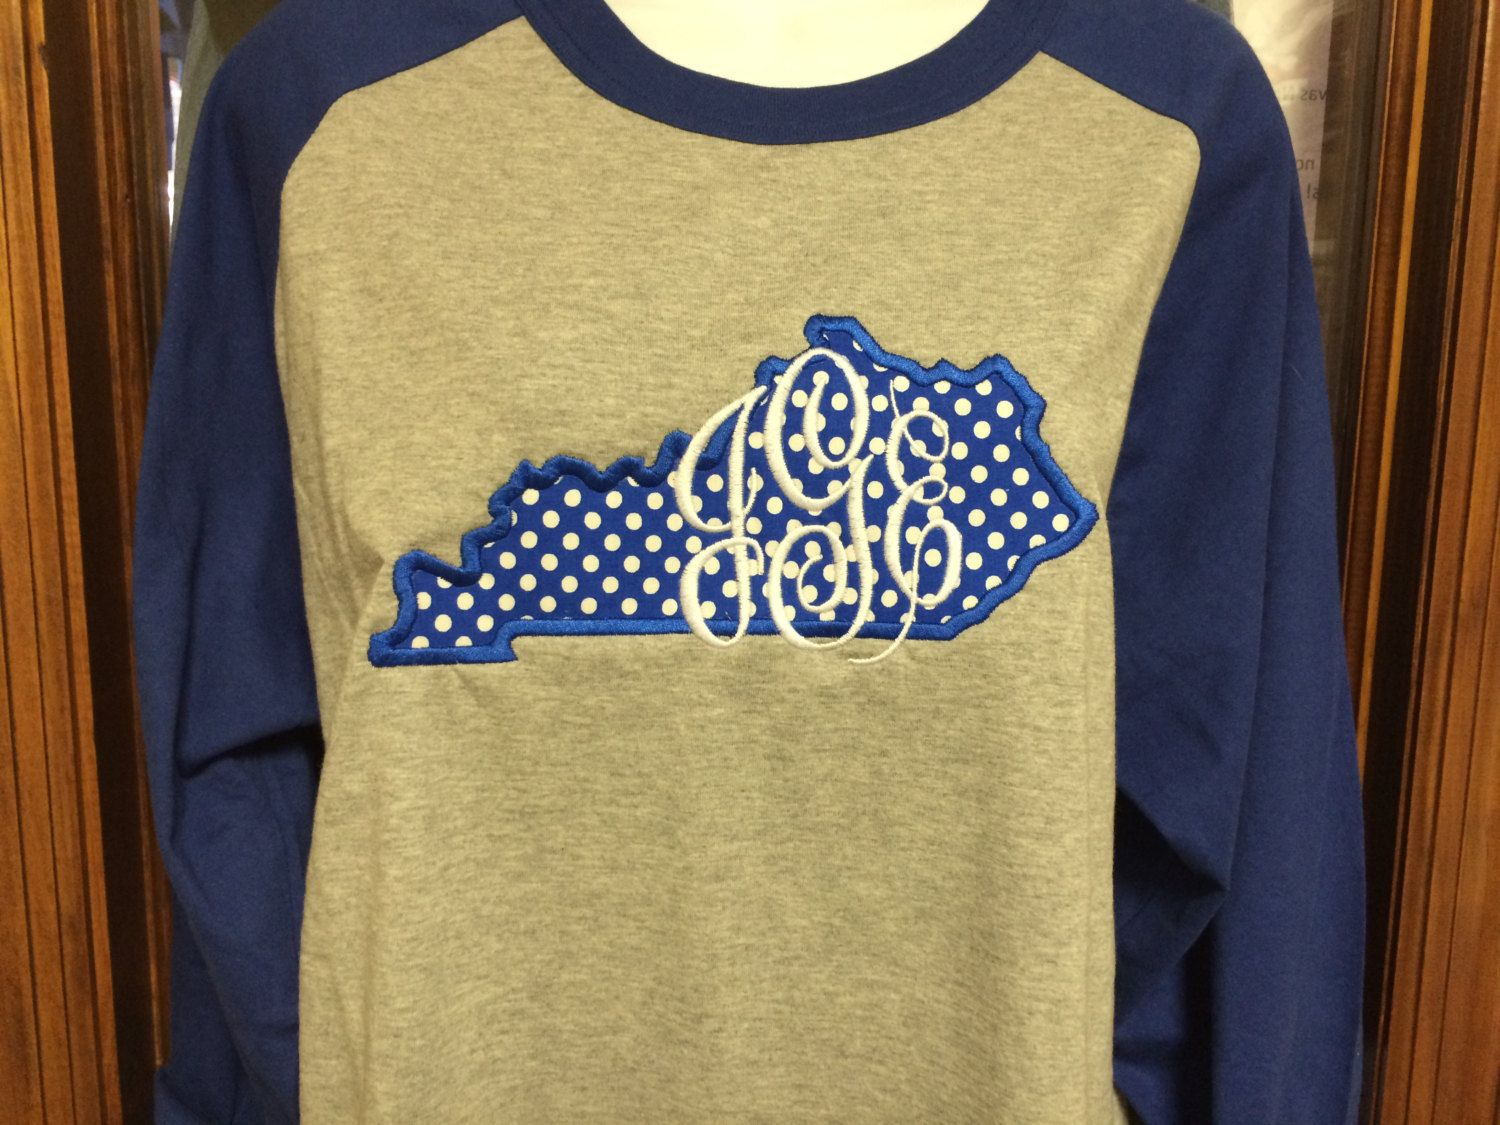 Monogrammed state of kentucky appliqued baseball tee embroidery